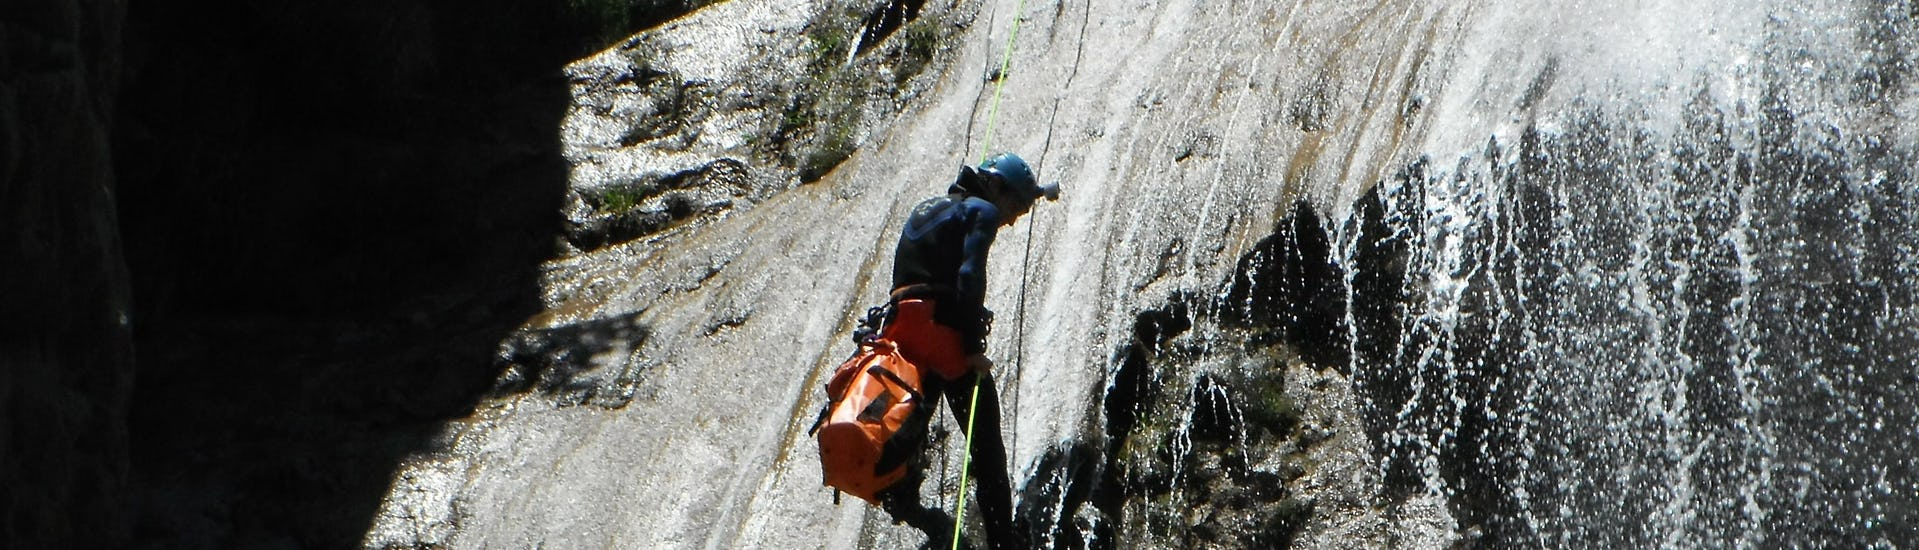 Canyoning in the Nissod - For Expert